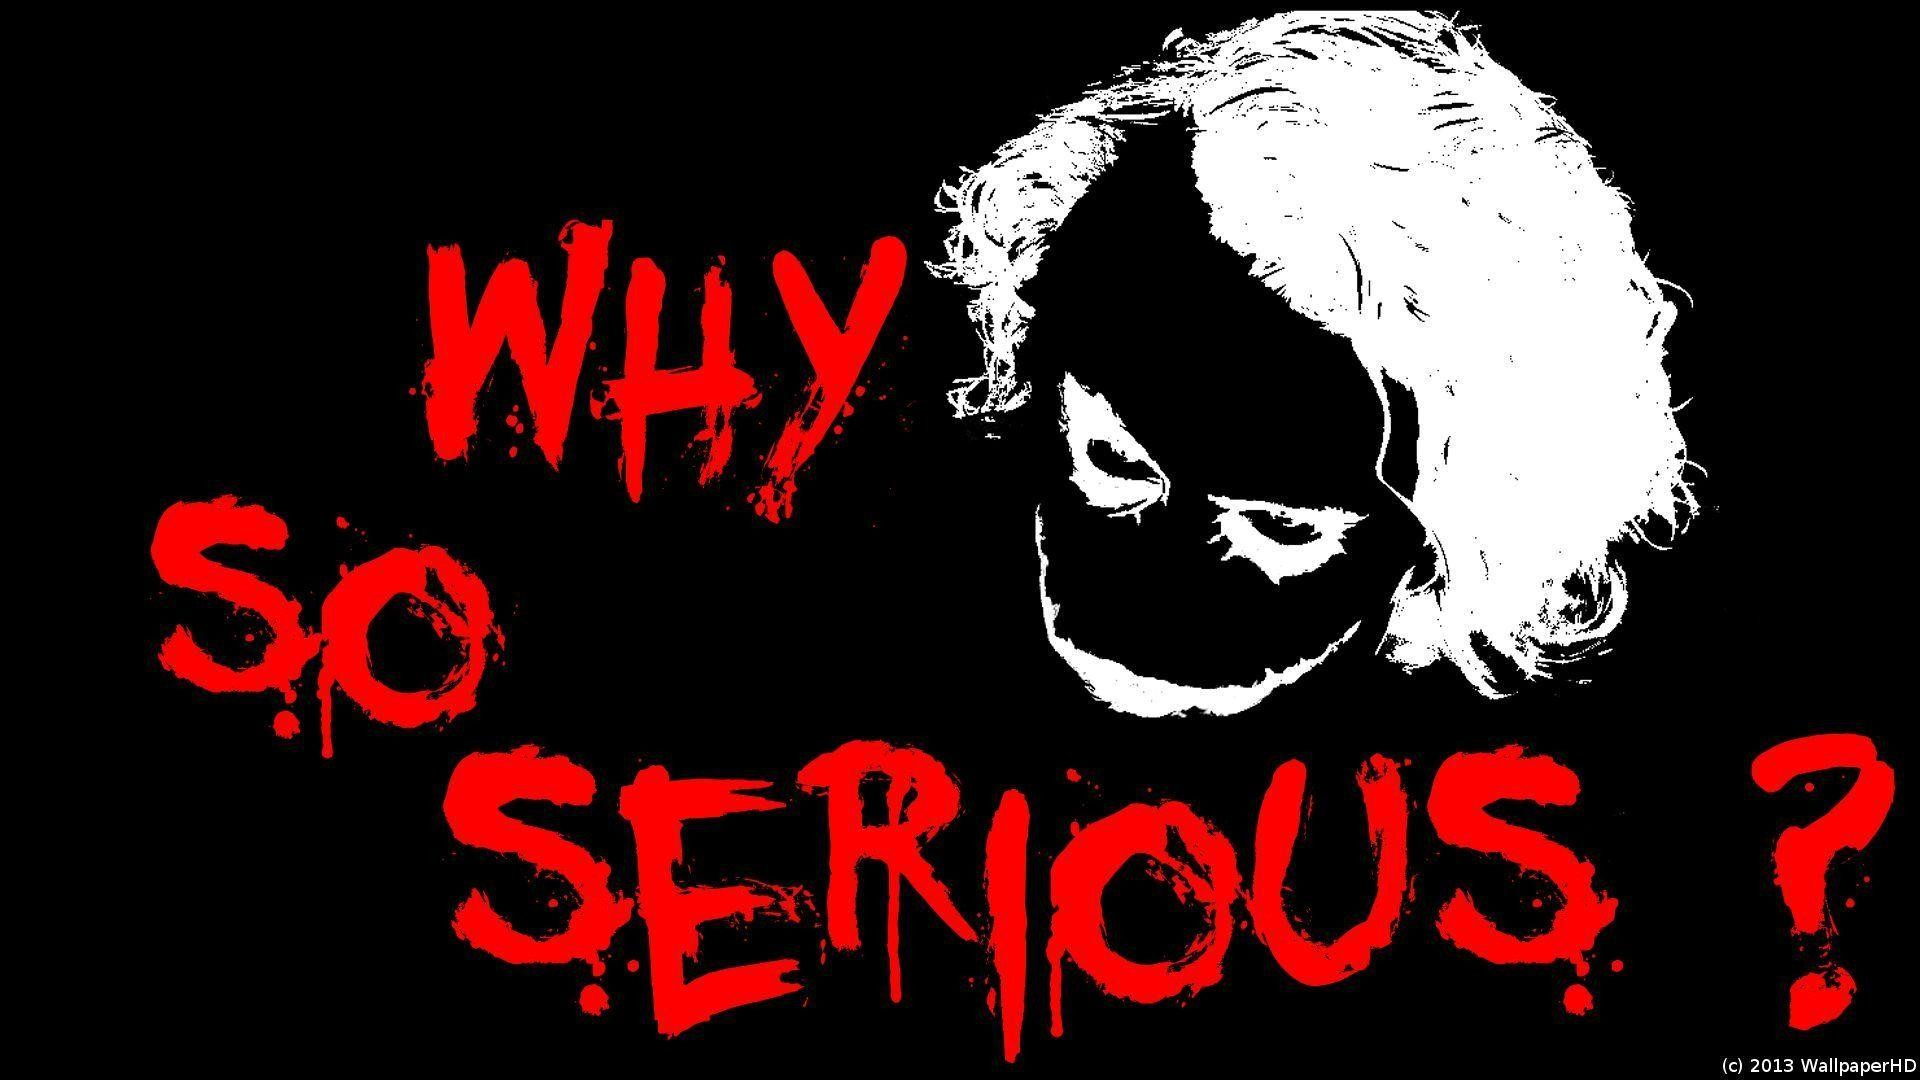 1920x1080 why-so-serious-Joker-Wallpaper-by-WallpaperHD by WallpaperHD on